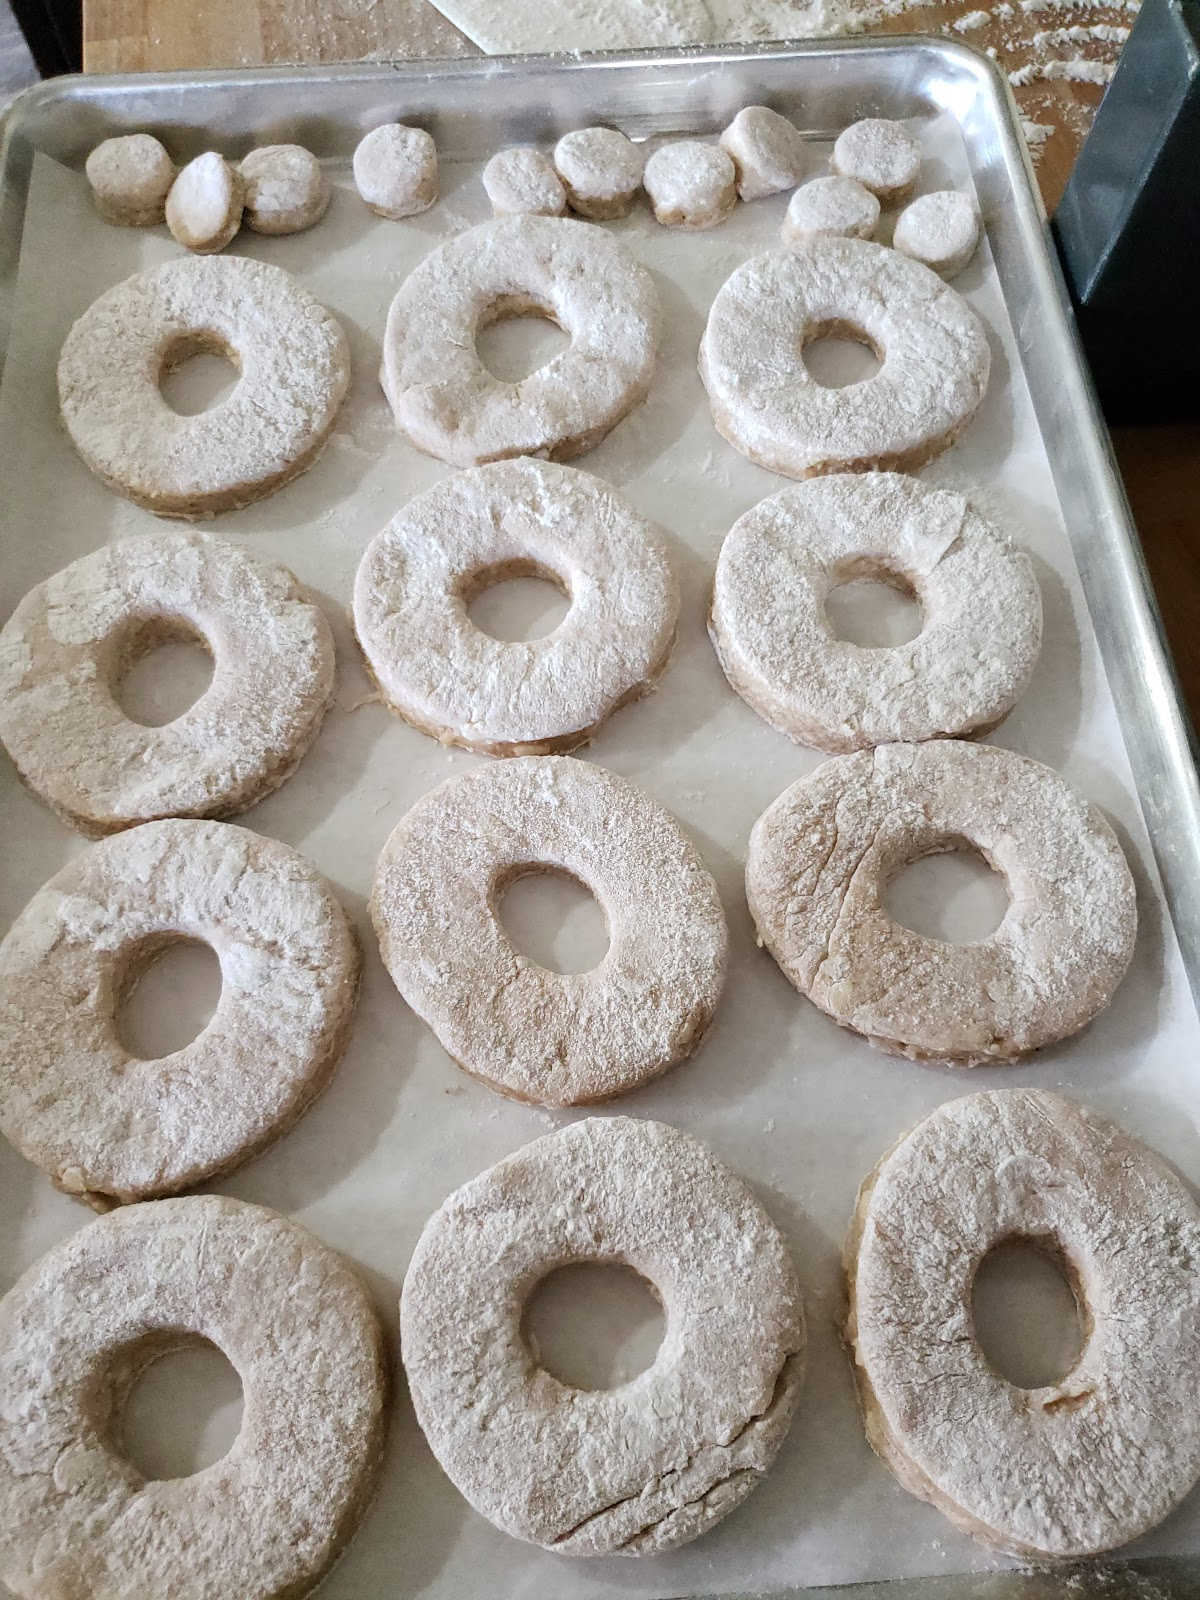 Donuts cut out on sheet pan before frying.